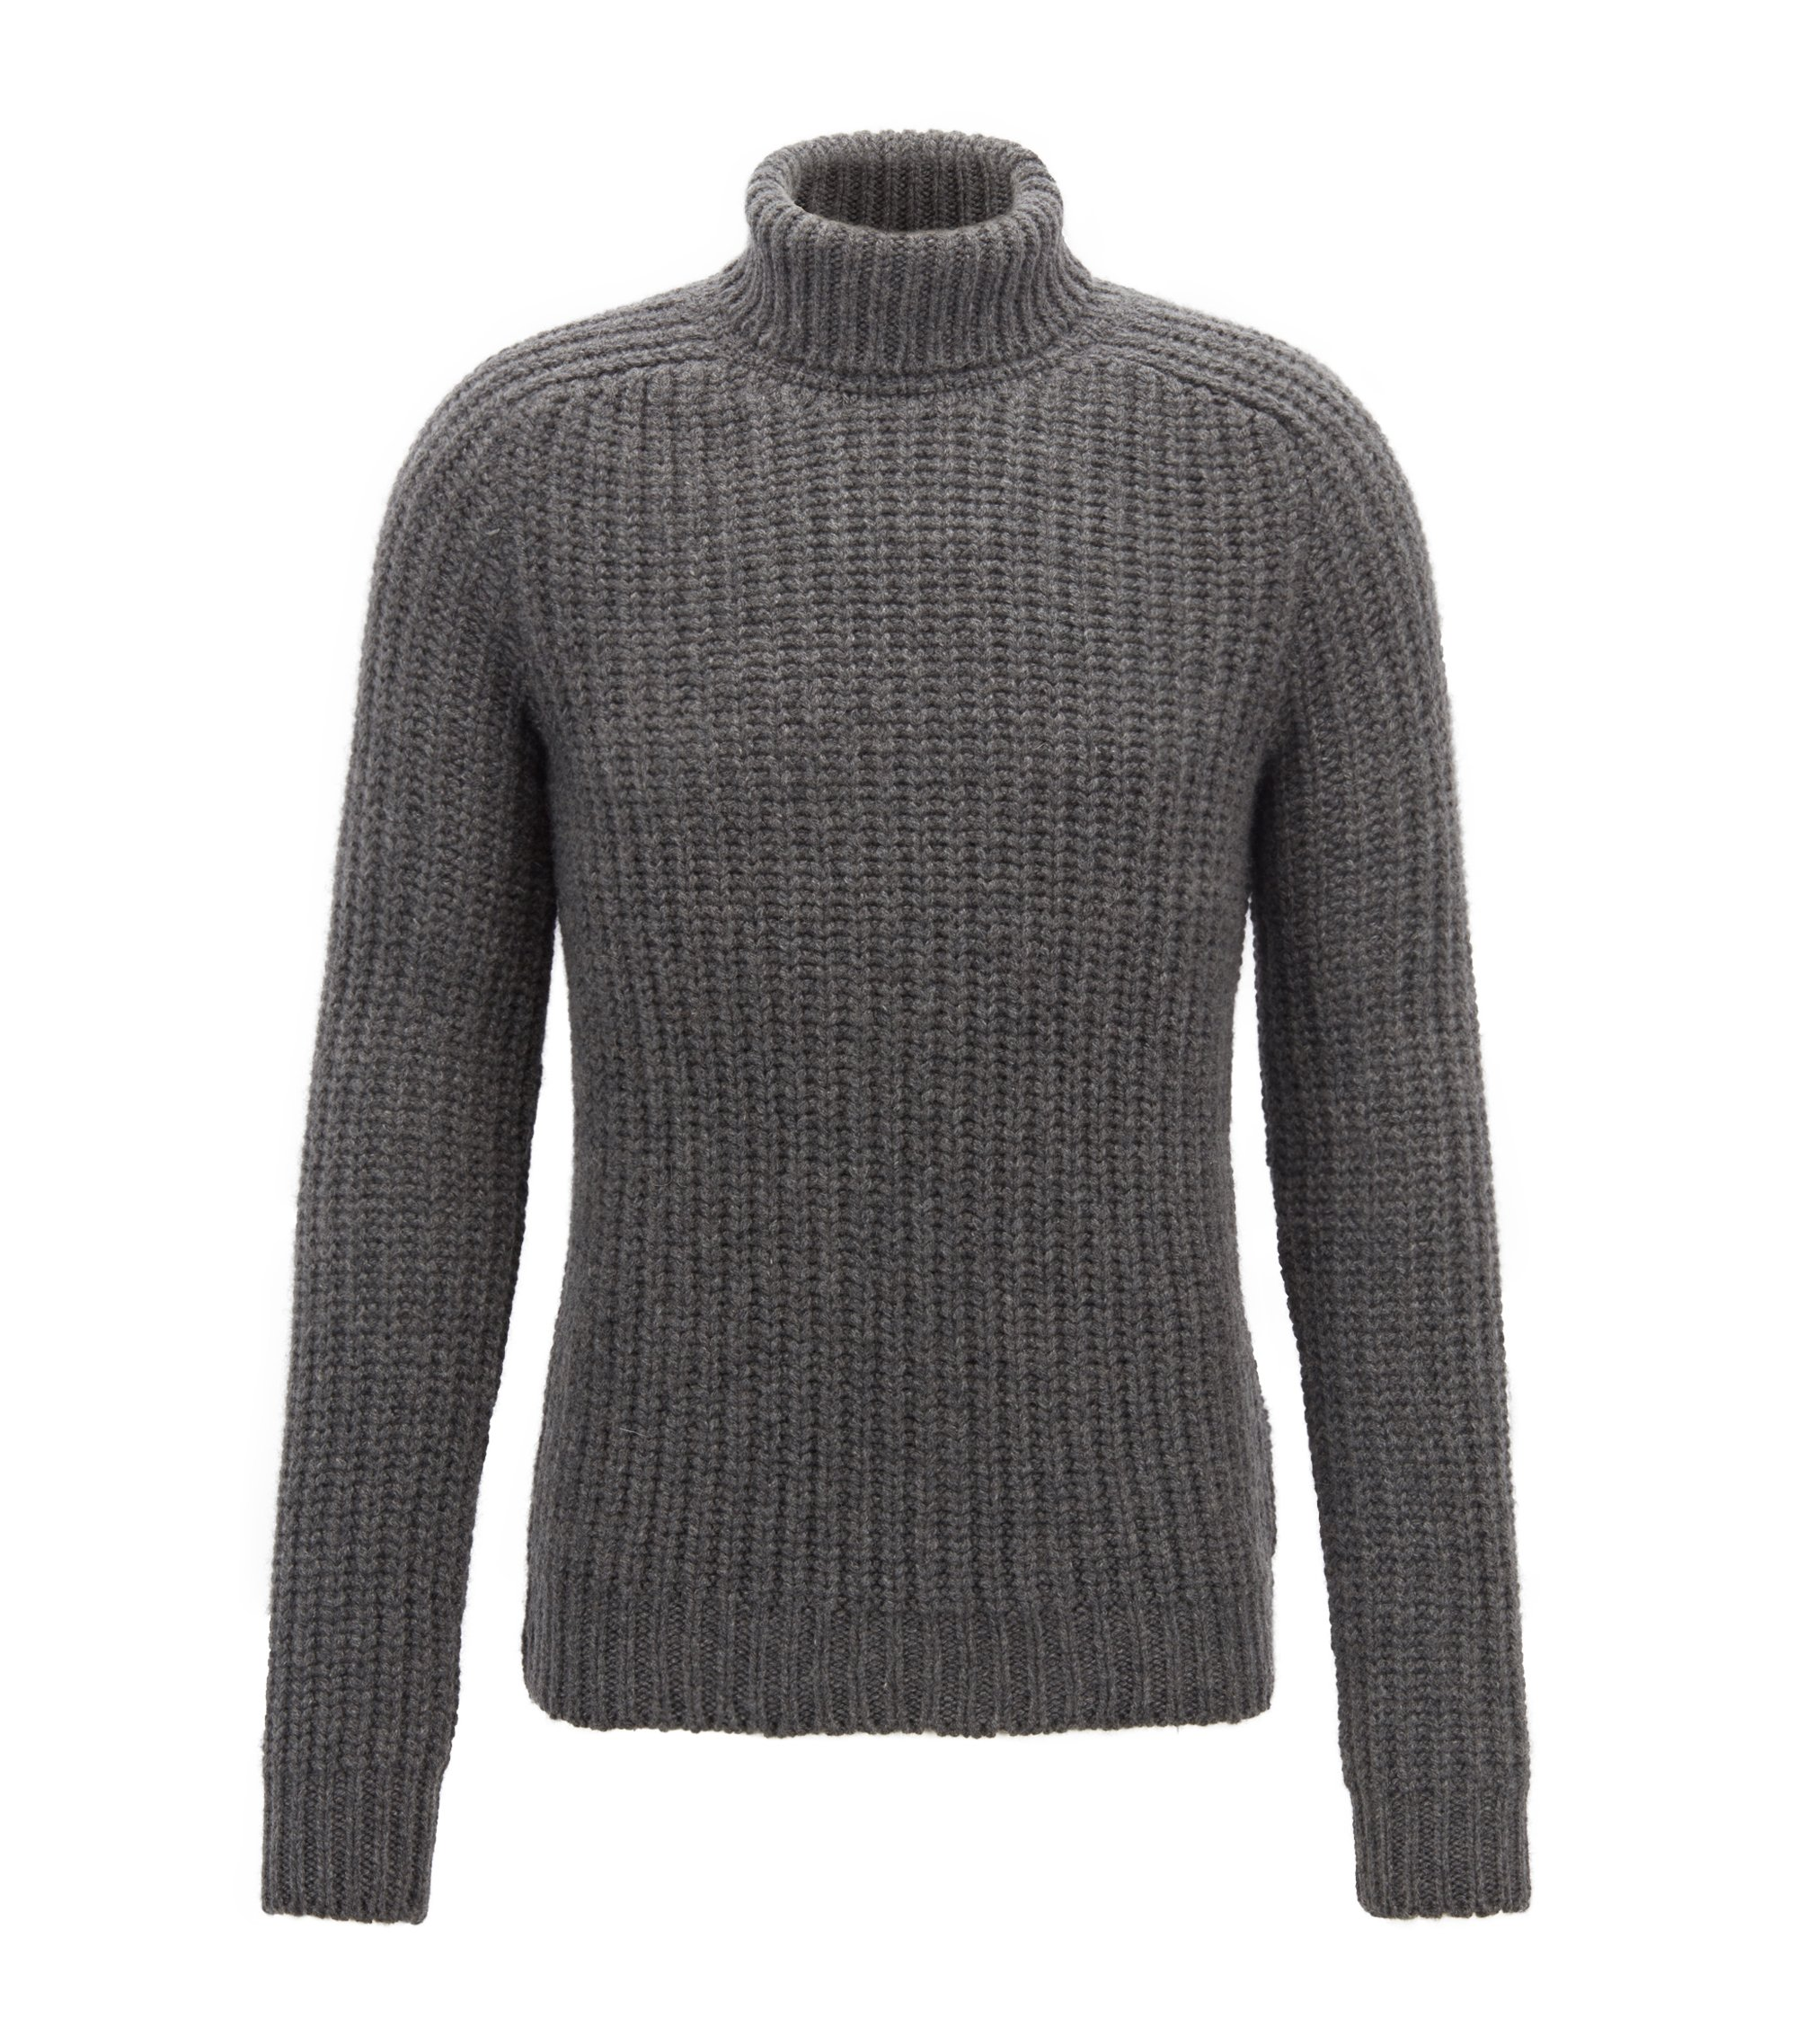 Fashion Show Capsule turtleneck sweater in cashmere, Grey